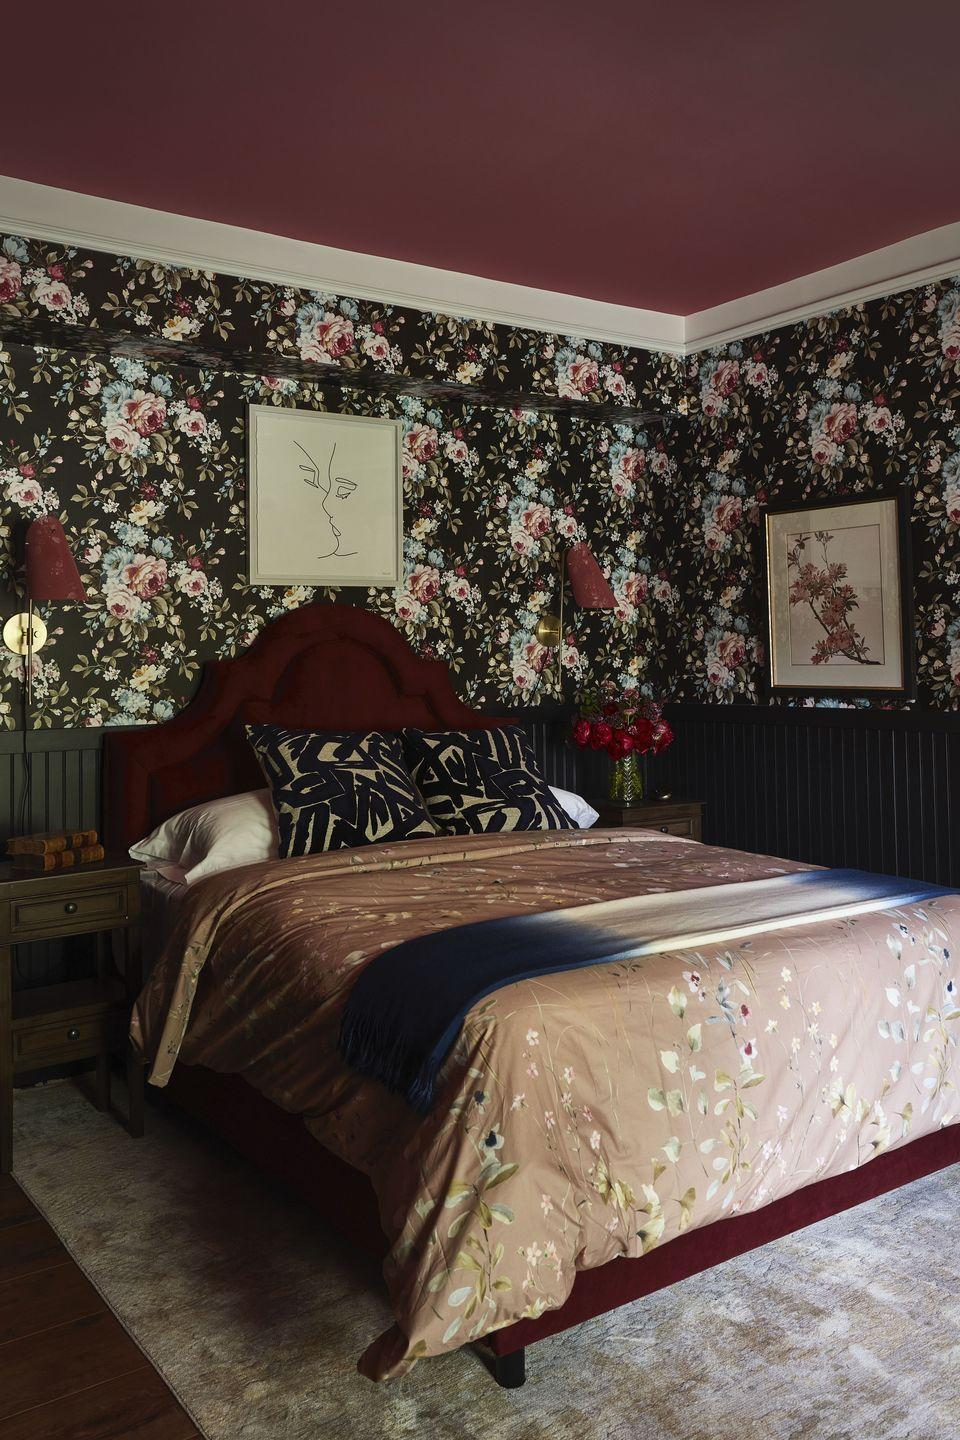 """<p>Edgy meets traditional in this statement-making room by <a href=""""https://www.lhdesigned.com/"""" rel=""""nofollow noopener"""" target=""""_blank"""" data-ylk=""""slk:Linda Hayslett"""" class=""""link rapid-noclick-resp"""">Linda Hayslett</a>. Called the Maddi-Mia Room after Hayslett's mother and dog, the room features a fun mixture of color and pattern thanks to the floral <a href=""""https://clarke-clarke.sandersondesigngroup.com/"""" rel=""""nofollow noopener"""" target=""""_blank"""" data-ylk=""""slk:Clarke & Clarke"""" class=""""link rapid-noclick-resp"""">Clarke & Clarke</a> wallpaper and the berry-colored platform bed from Wayfair's <a href=""""https://www.wayfair.com/brand/bnd/kelly-clarkson-home-b53111-masterClID~804.html"""" rel=""""nofollow noopener"""" target=""""_blank"""" data-ylk=""""slk:Kelly Clarkson Home Collection"""" class=""""link rapid-noclick-resp"""">Kelly Clarkson Home Collection</a>. The room offers a variety of budget-friendly finds, including bedding from <a href=""""https://www.zarahome.com/"""" rel=""""nofollow noopener"""" target=""""_blank"""" data-ylk=""""slk:Zara Home"""" class=""""link rapid-noclick-resp"""">Zara Home</a> and a rug and framed print from <a href=""""https://www.homegoods.com/locator?cid=HOM:PaidSearchBrand:GGL:NA:SA-71700000071579576-homegoods&gclsrc=aw.ds&&gclid=CjwKCAjwtJ2FBhAuEiwAIKu19lCDt8oIrgpHA-QoFENOdwoNBsbS-vnz0PTIsgRFO2m1__BvrPisKhoCYuoQAvD_BwE&pcrid=460207990447&mkwid=s%7Cdc&pmt=e&pkw=homegoods"""" rel=""""nofollow noopener"""" target=""""_blank"""" data-ylk=""""slk:HomeGoods"""" class=""""link rapid-noclick-resp"""">HomeGoods</a>. Hayslett told us: """"Diversity will make the design industry flourish and give creativity the growth it needs."""" </p>"""